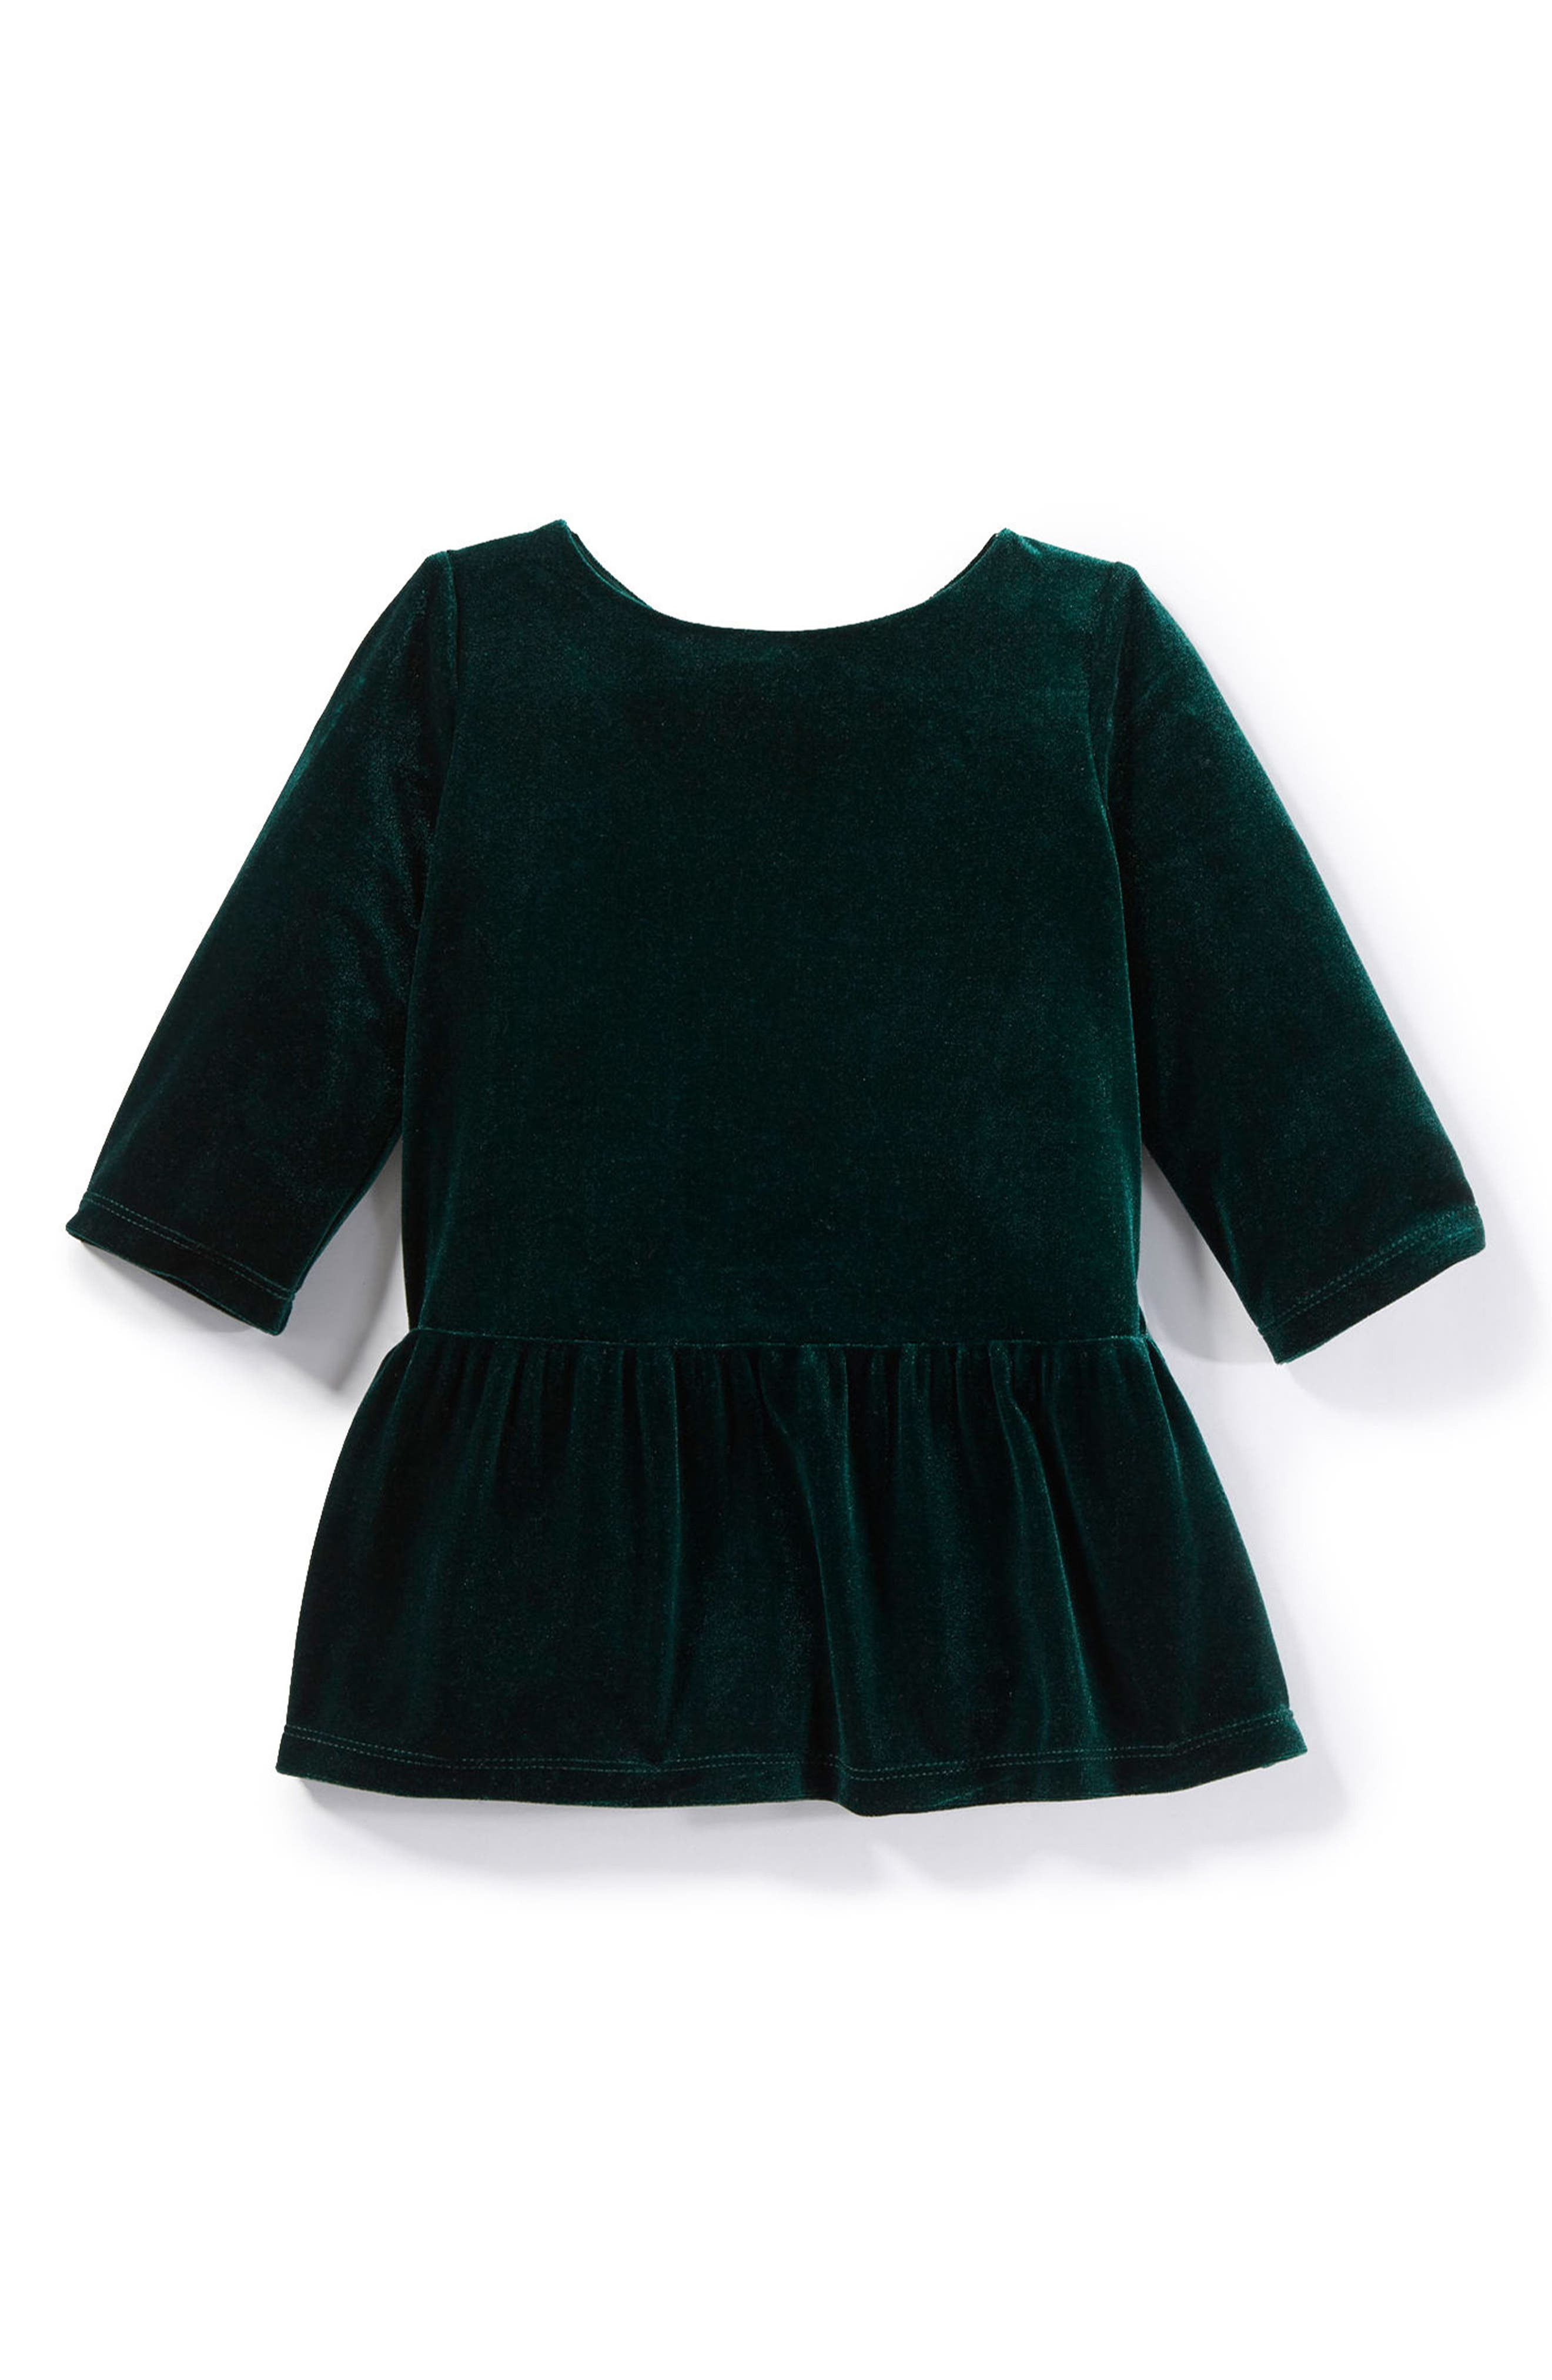 Main Image - Peek Angelina Velvet Dress (Baby Girls)